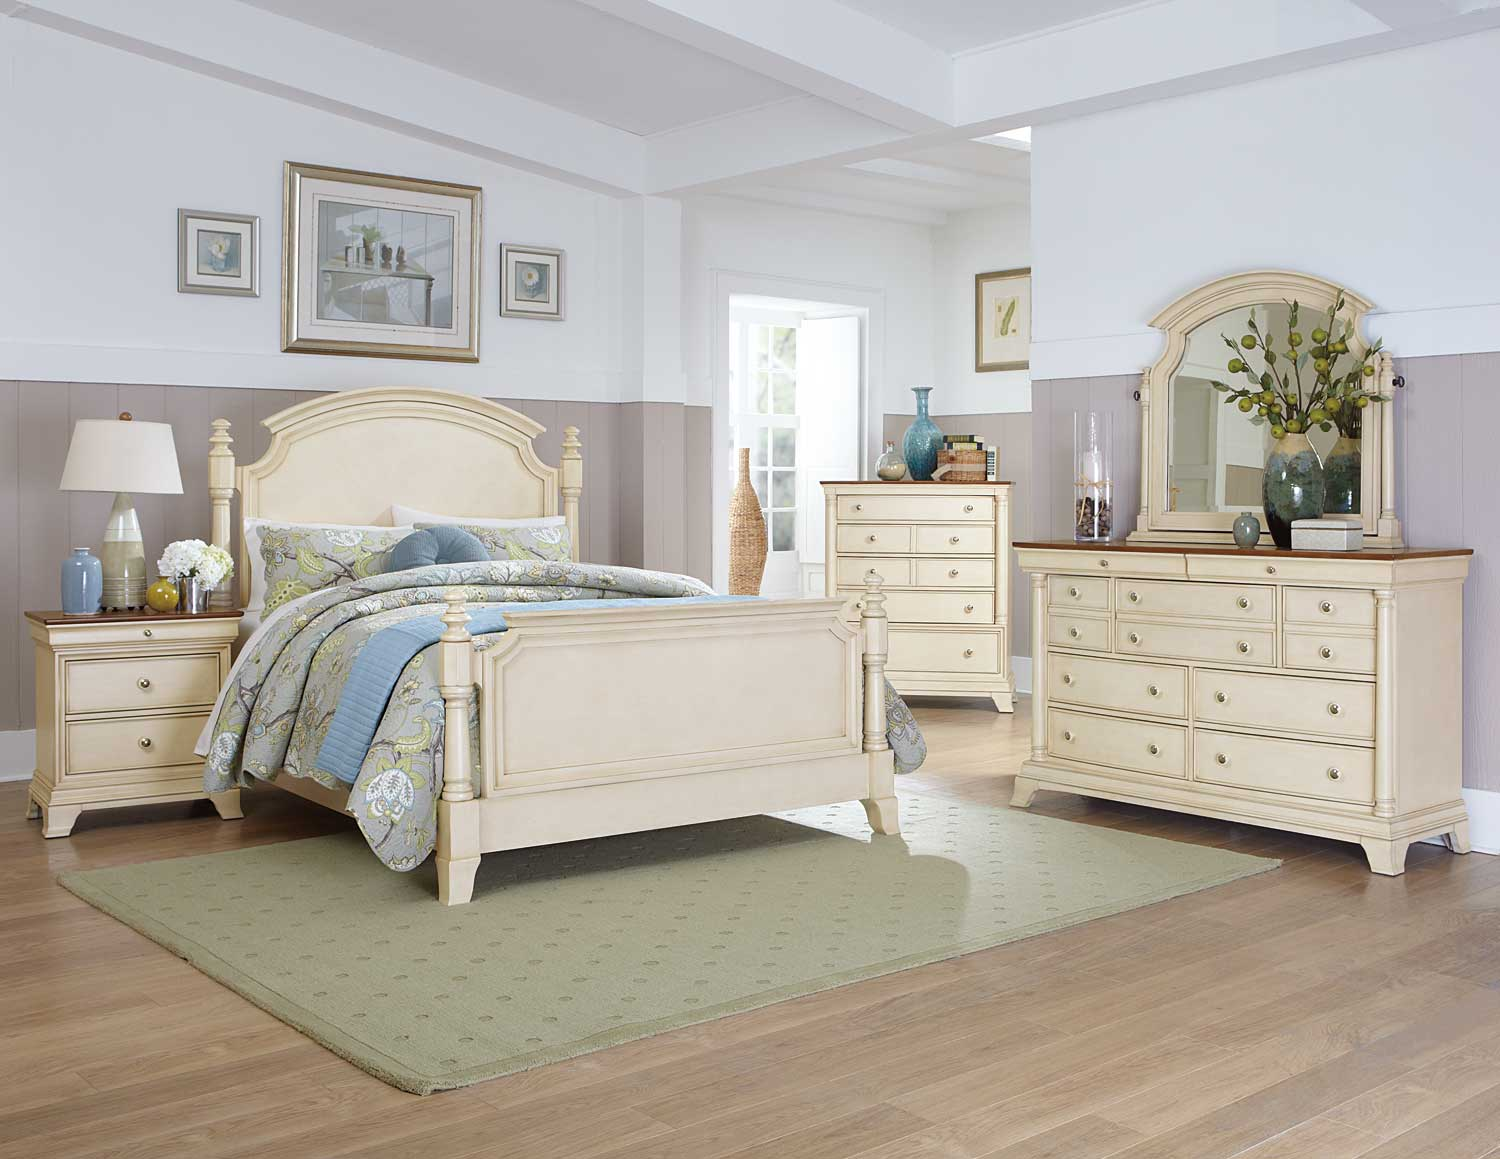 Antique White King Bedroom Set 1500 x 1159